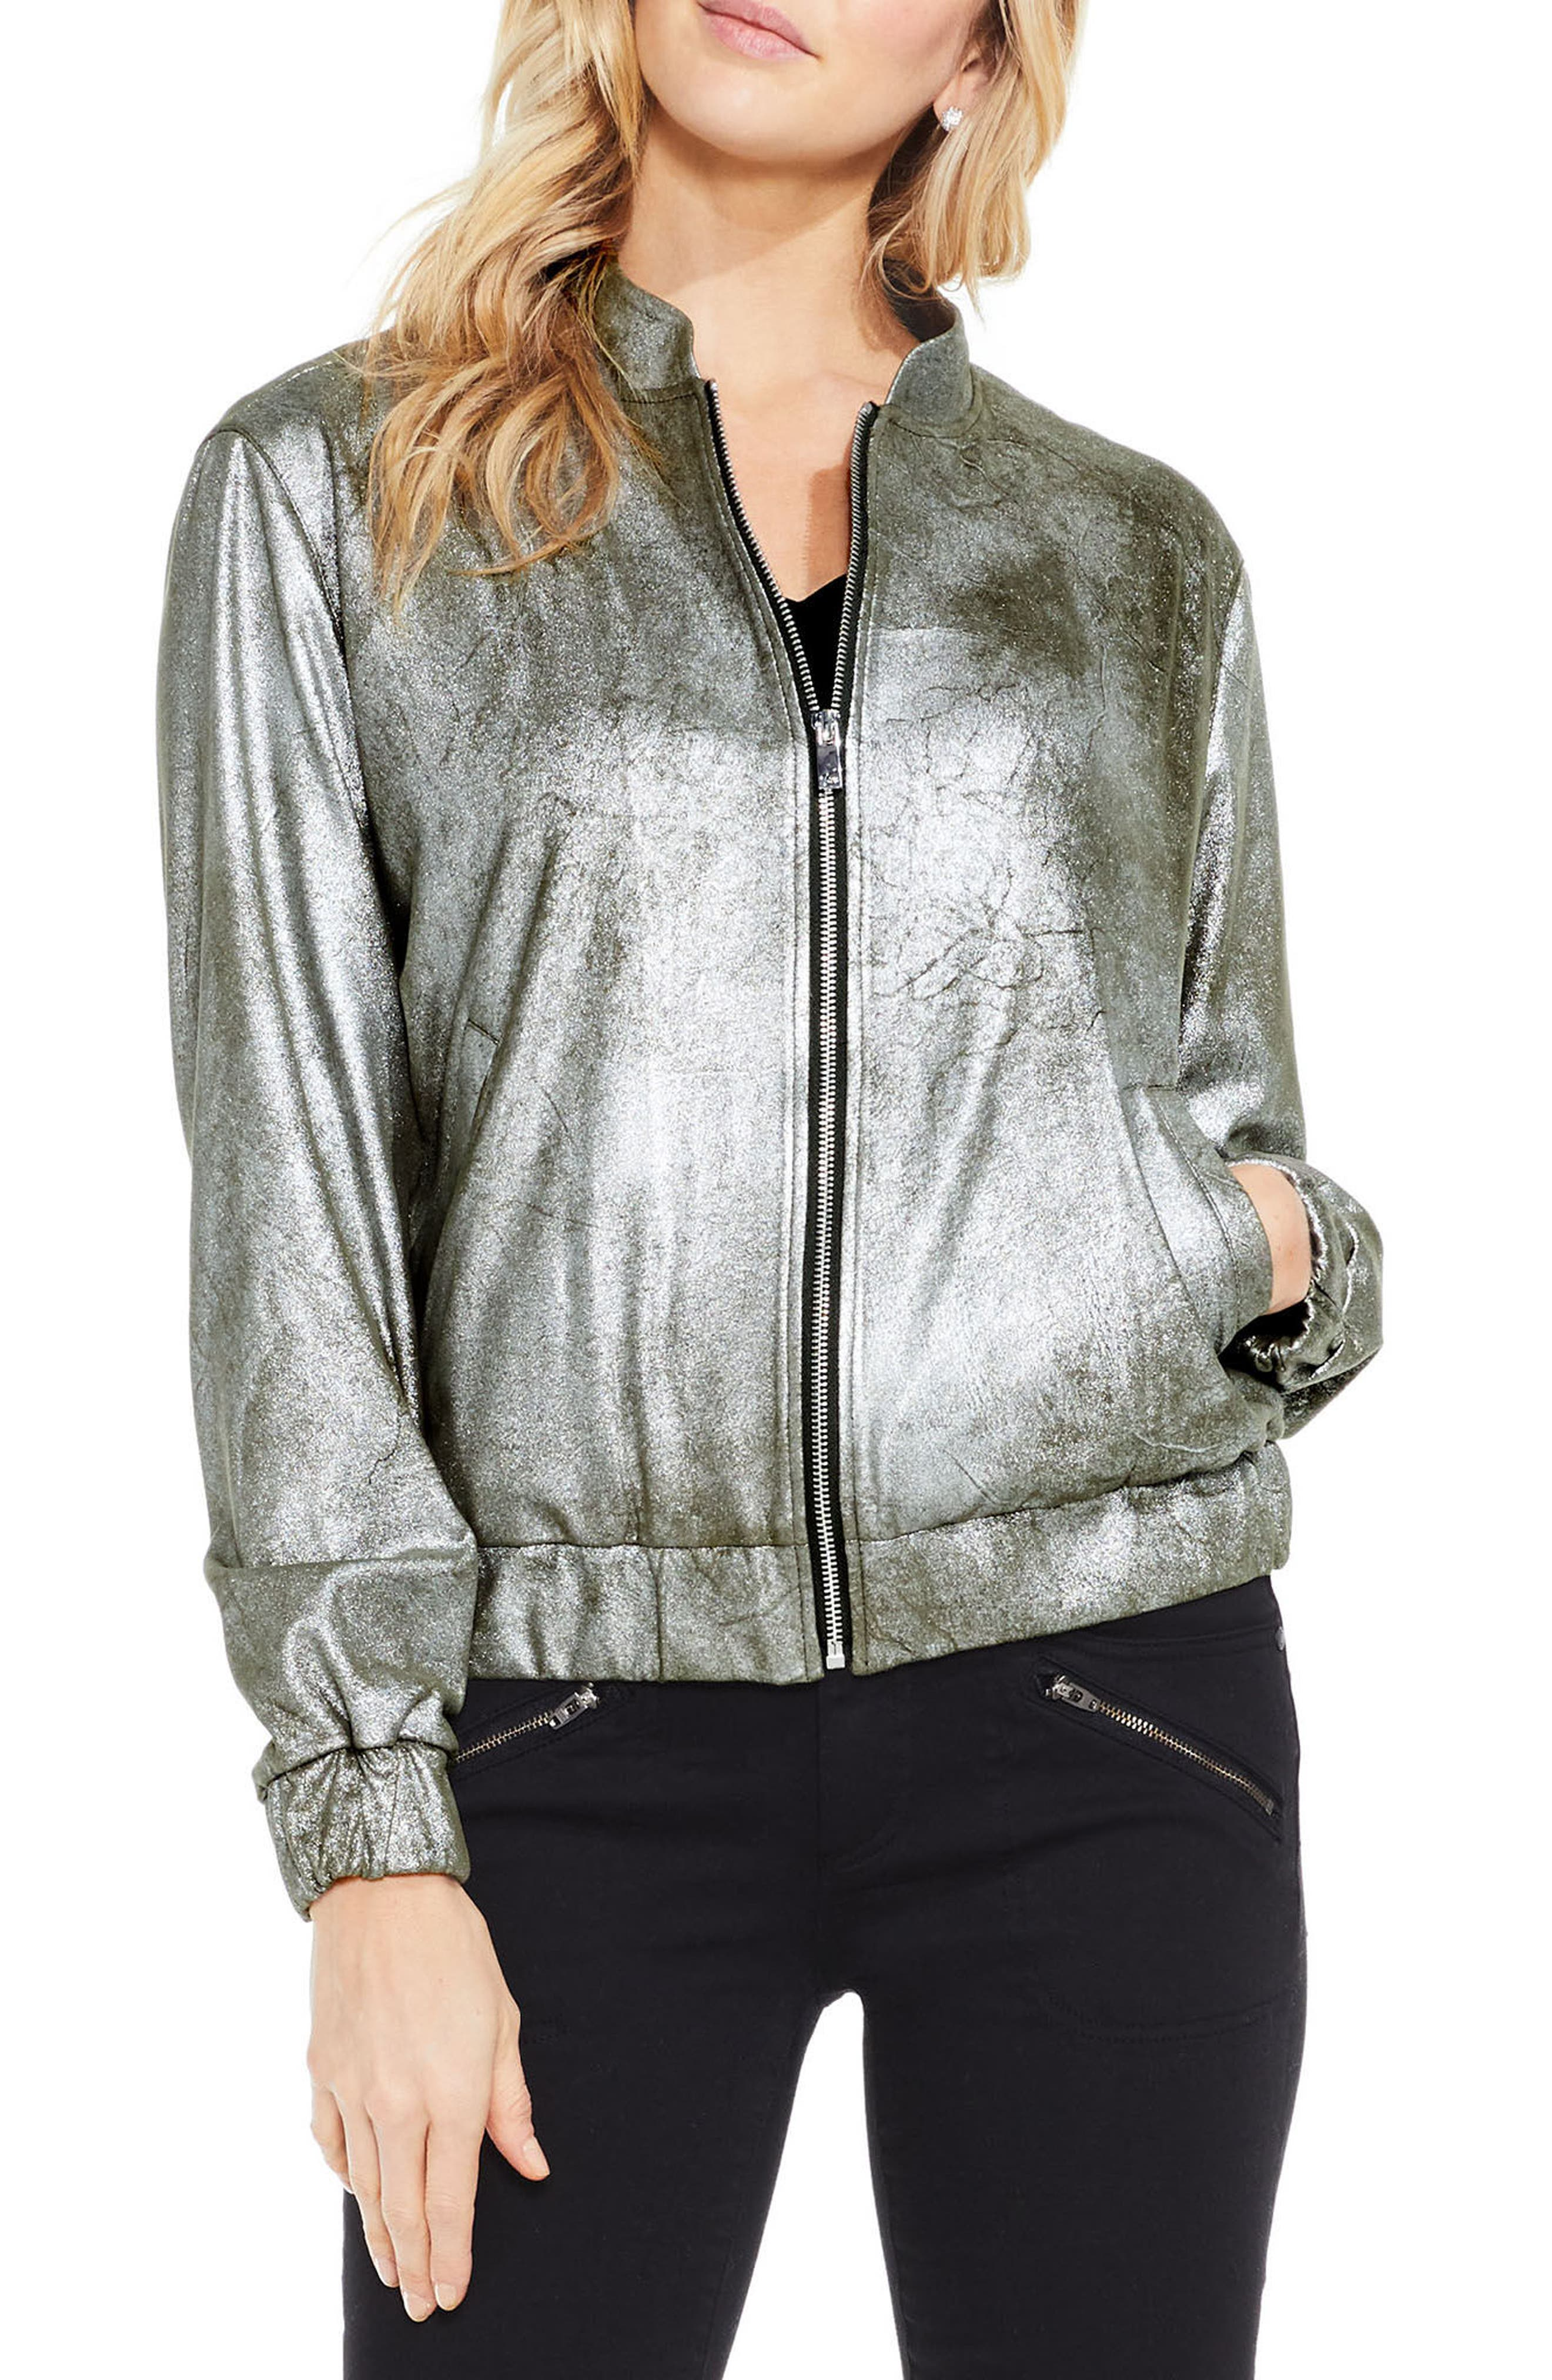 Alternate Image 1 Selected - Two by Vince Camuto Foiled Ponte Knit Bomber Jacket